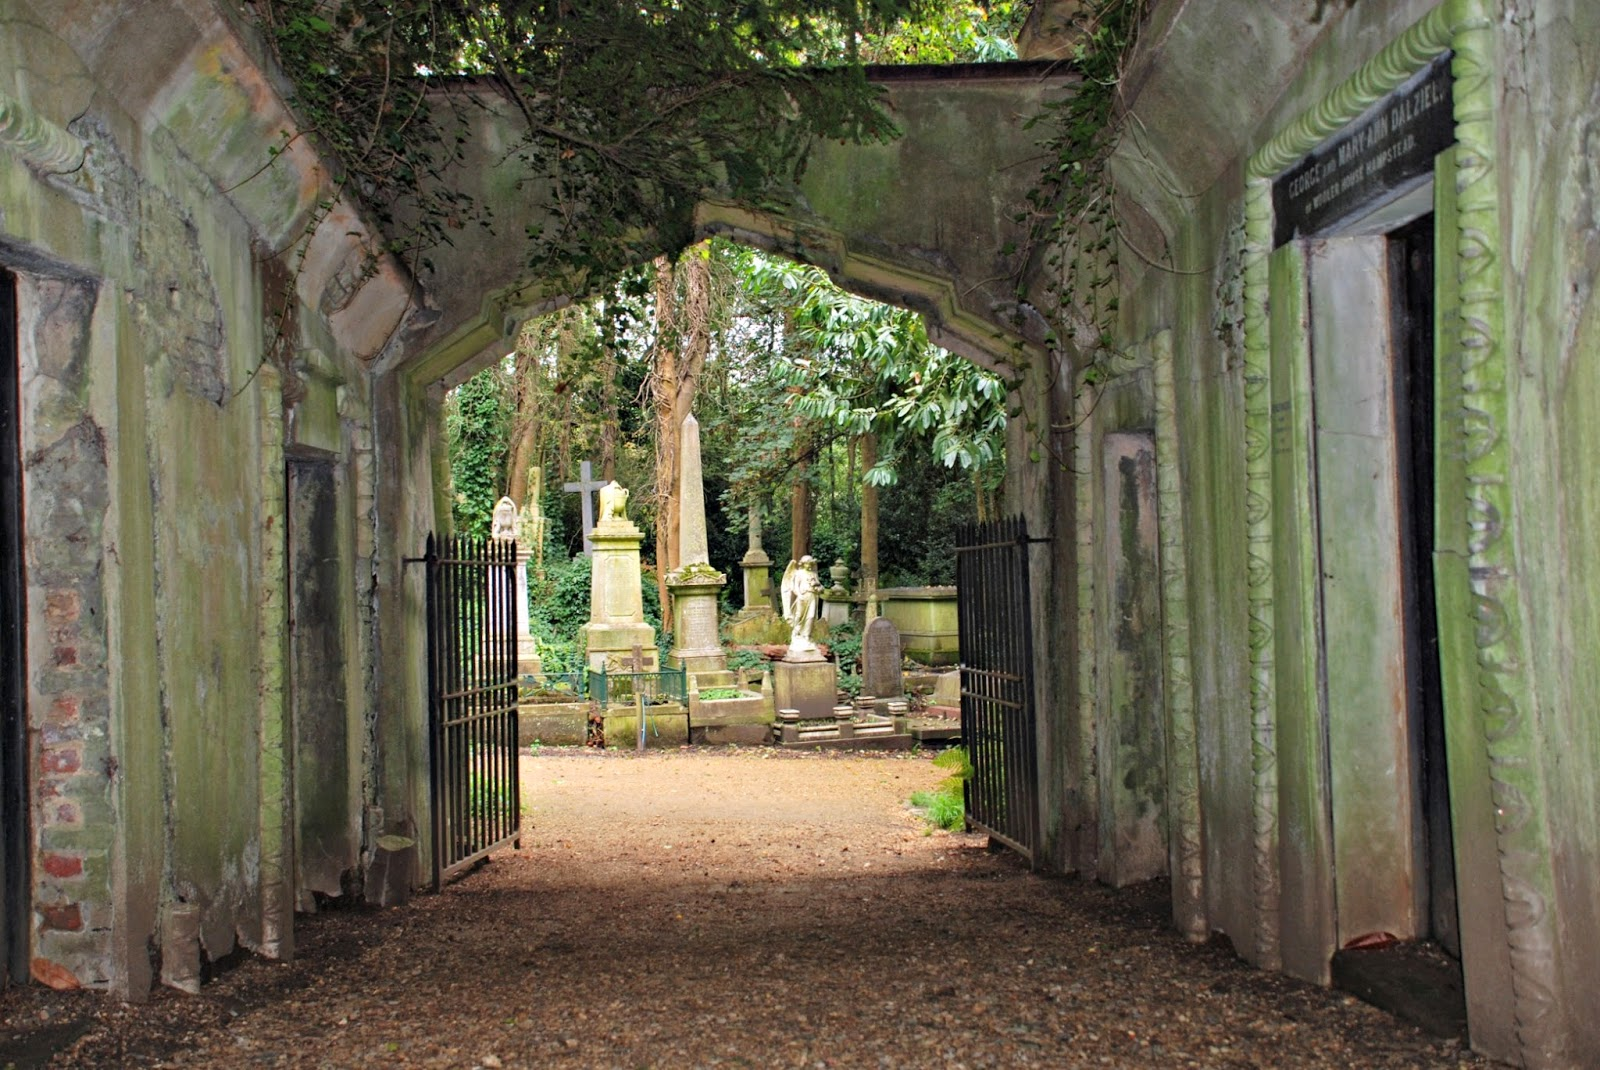 The Egyptian Avenue, Highgate Cemetery, London